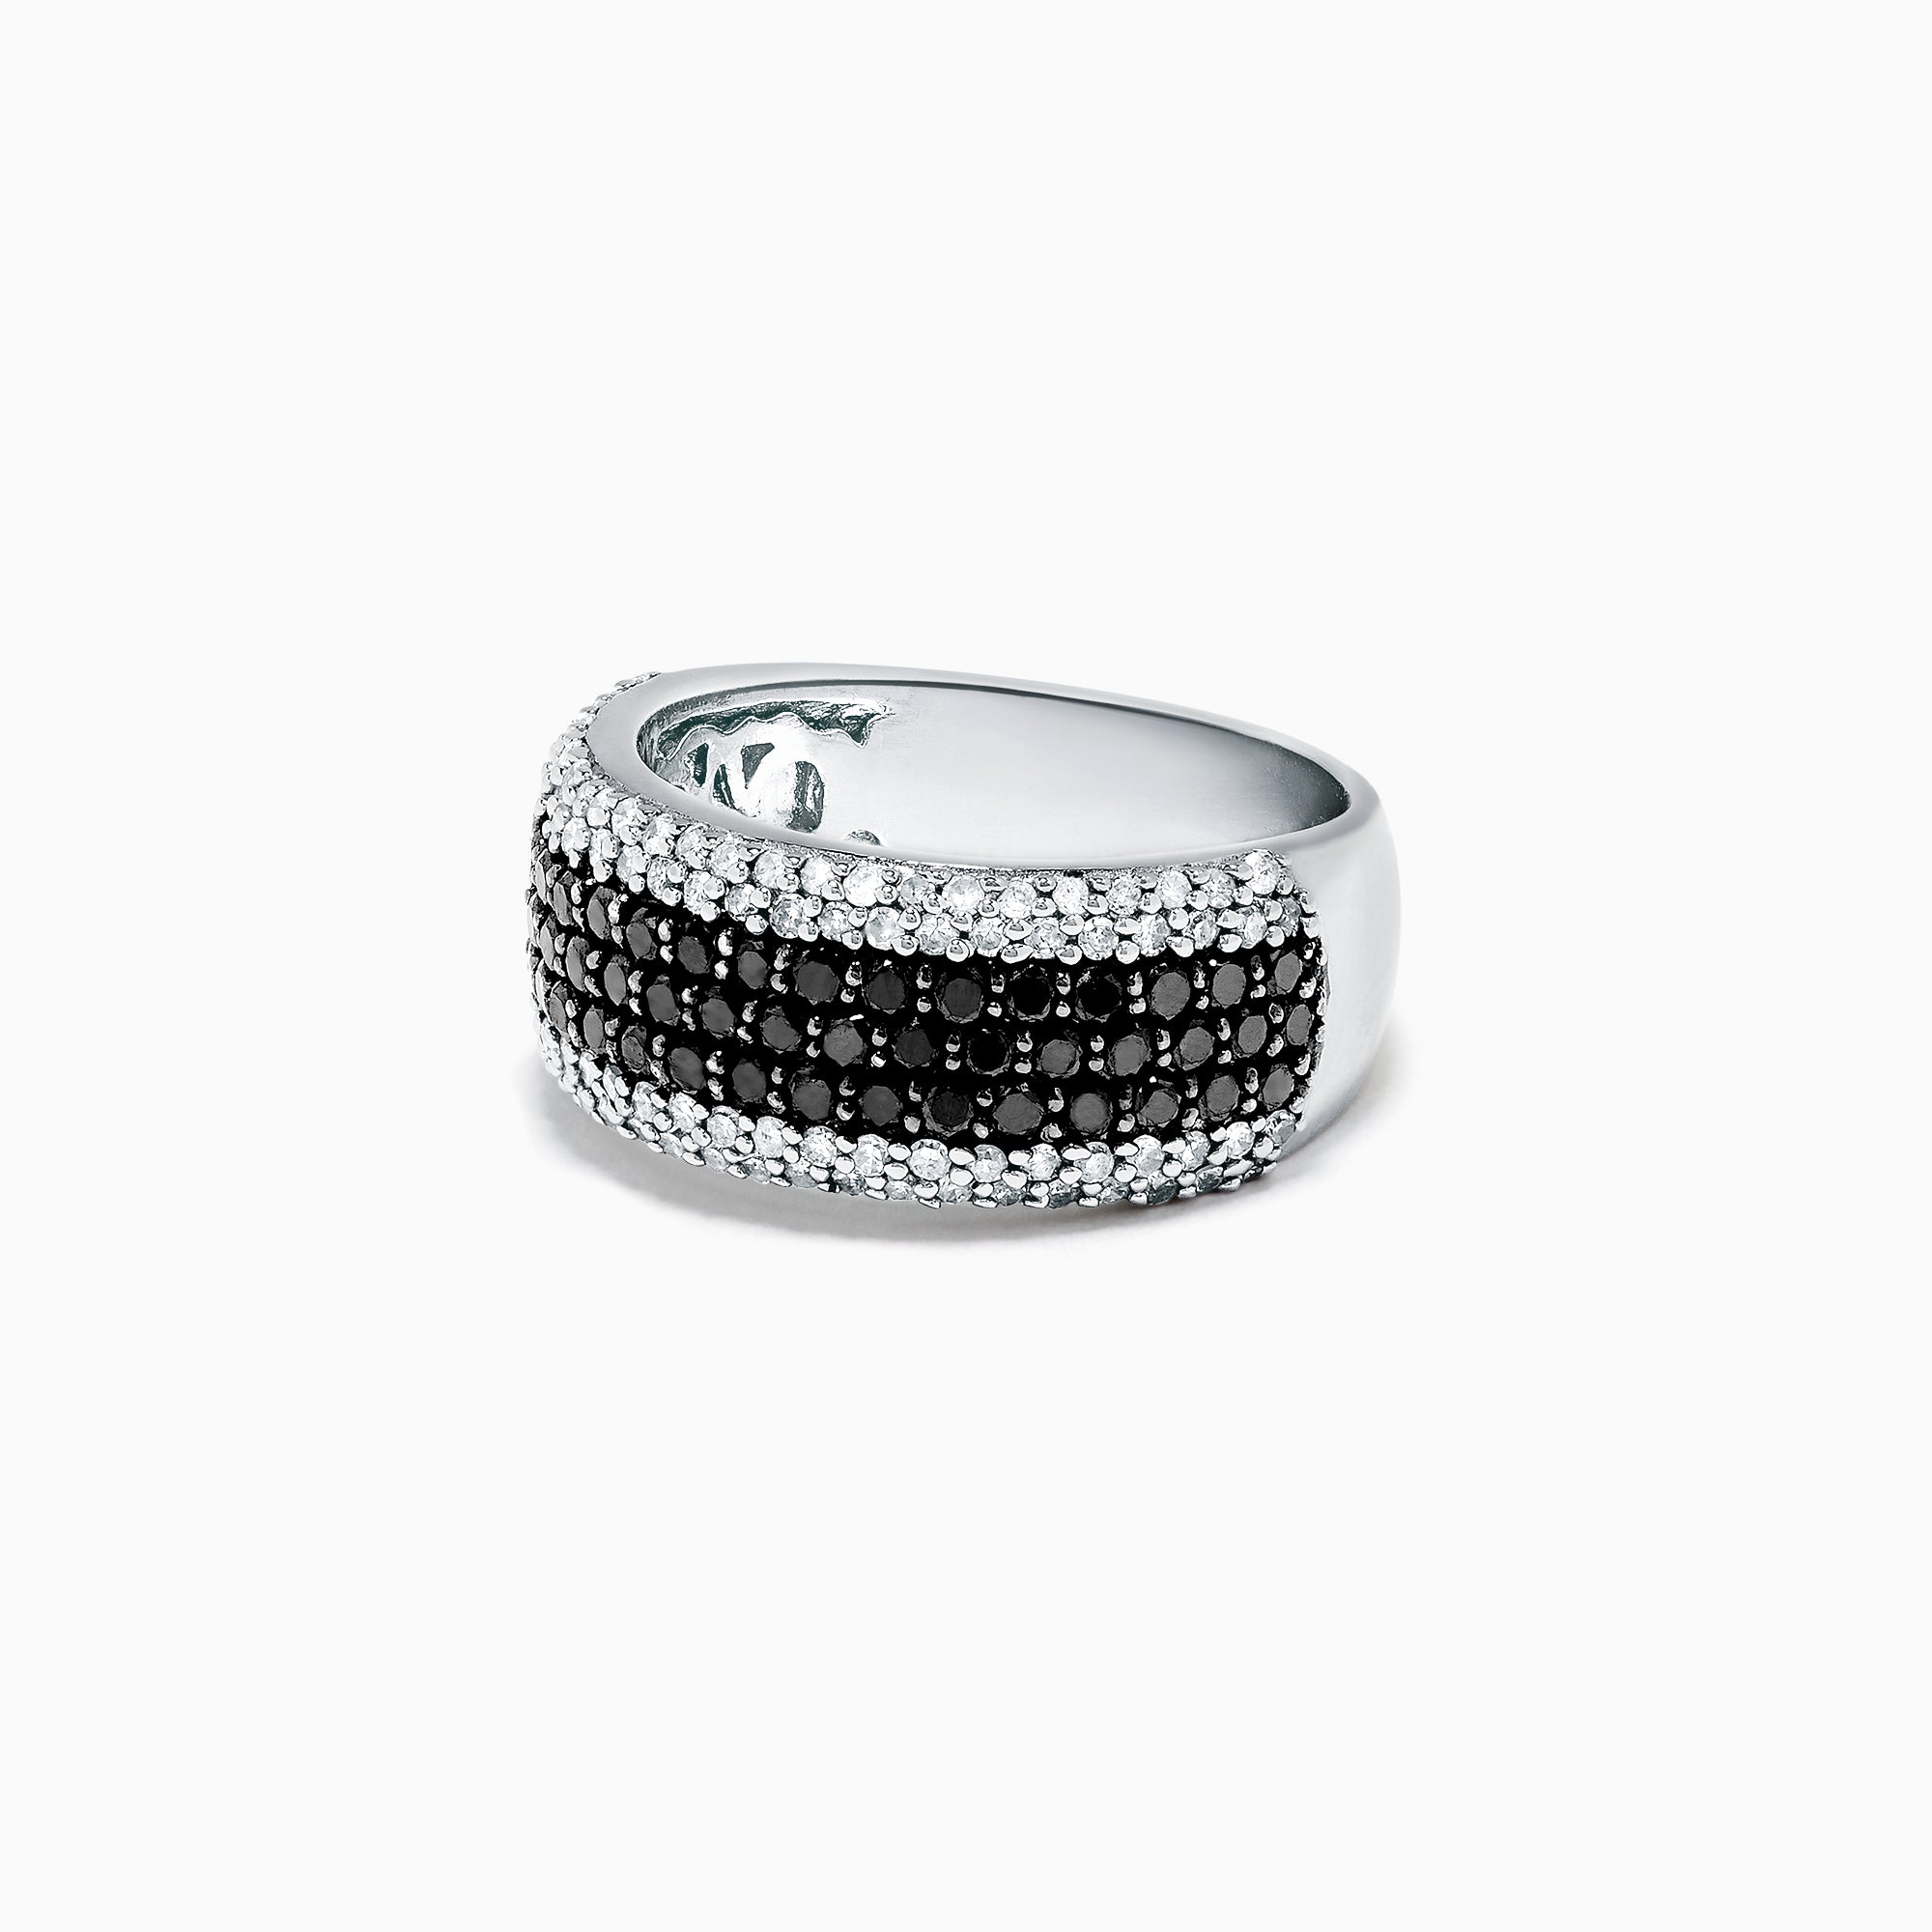 Effy 14K White Gold Black and White Diamond Pave Ring, 1.33 TCW